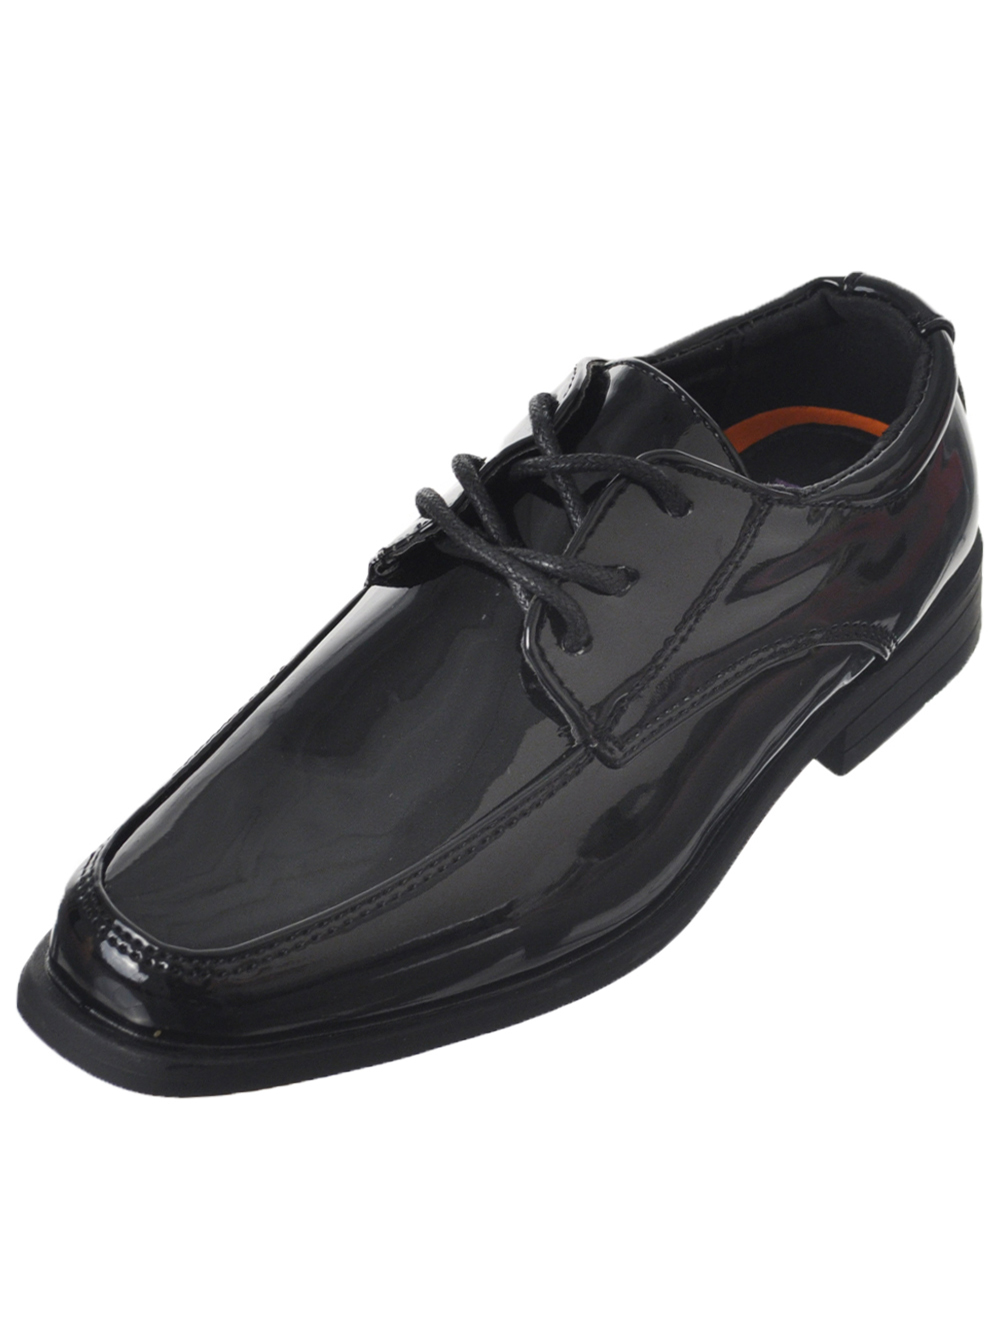 Jodano Collection Boys' Dress Shoes (Youth Sizes 13 - 8)